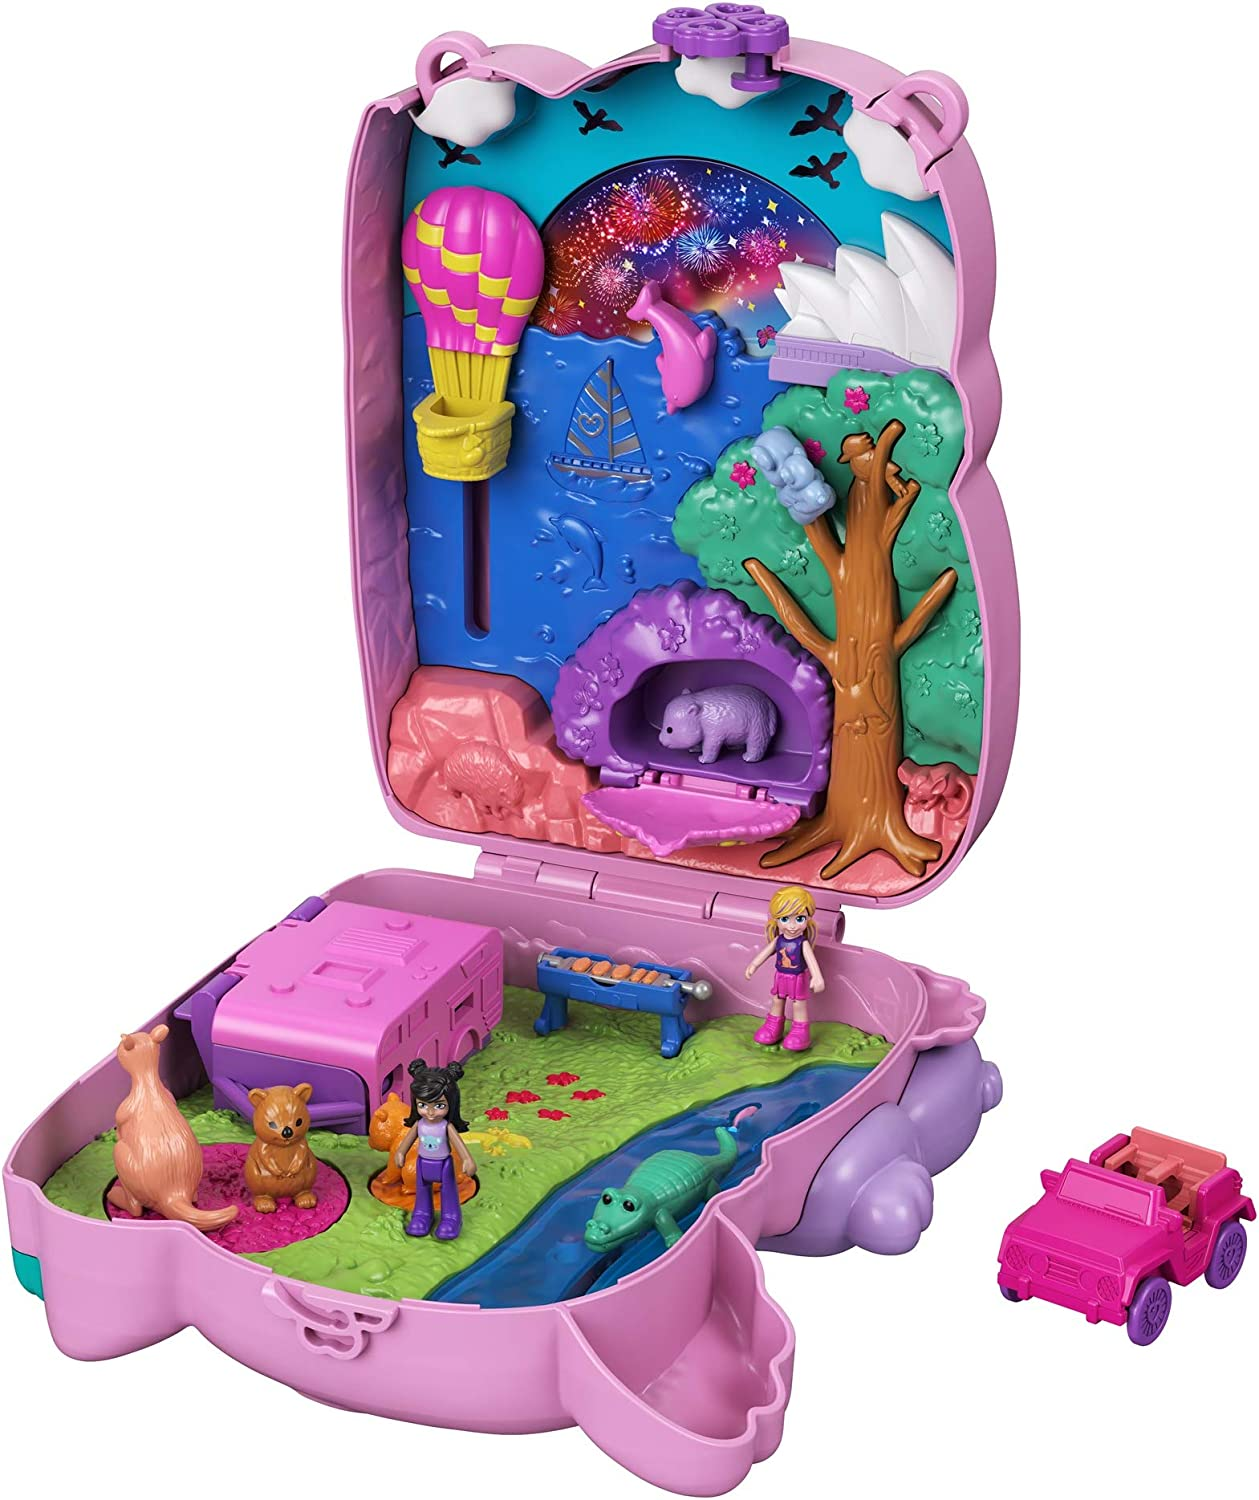 Polly Pocket Koala Adventures Wearable Purse Compact with Micro Polly Doll Friend Doll, 8 Outdoor-Related Features, 5 Animals Removable Vehicle Accessory, Great Gift for Ages 4 Years Old Up